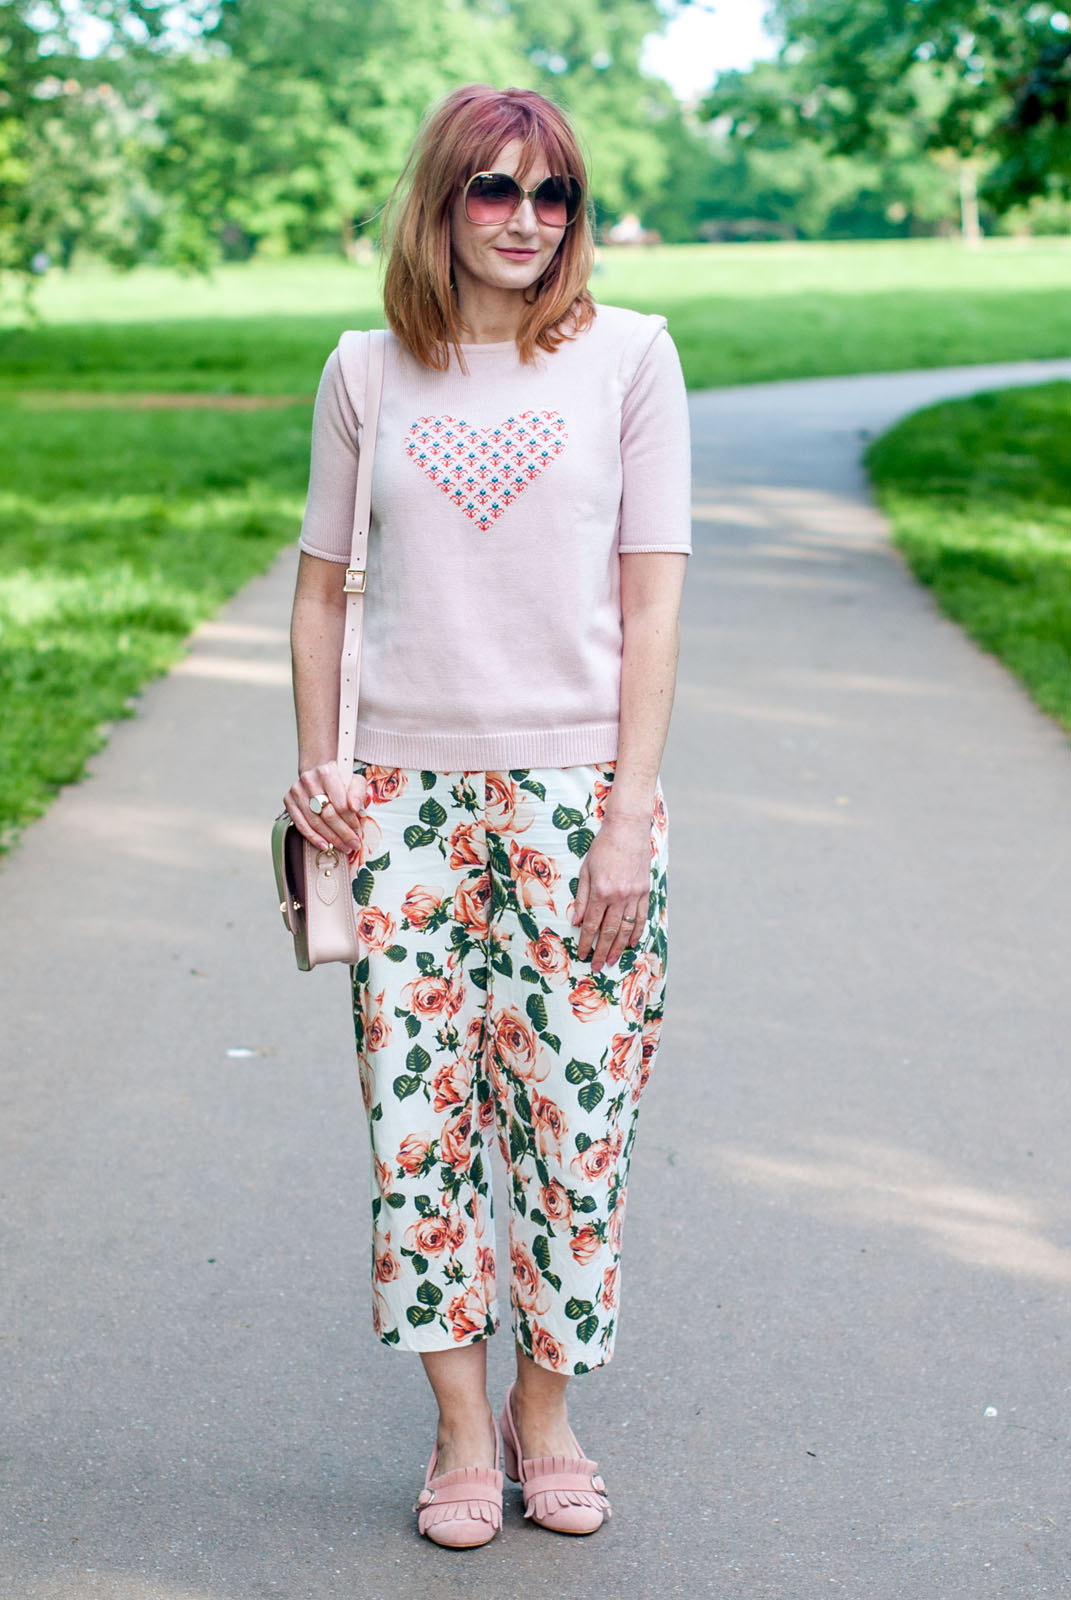 Blush pink summer outfit: Pink sweater with heart motif \ cropped floral trousers pants \ blush pink suede Gucci-style heeled loafers \ pink satchel | Not Dressed As Lamb, over 40 style